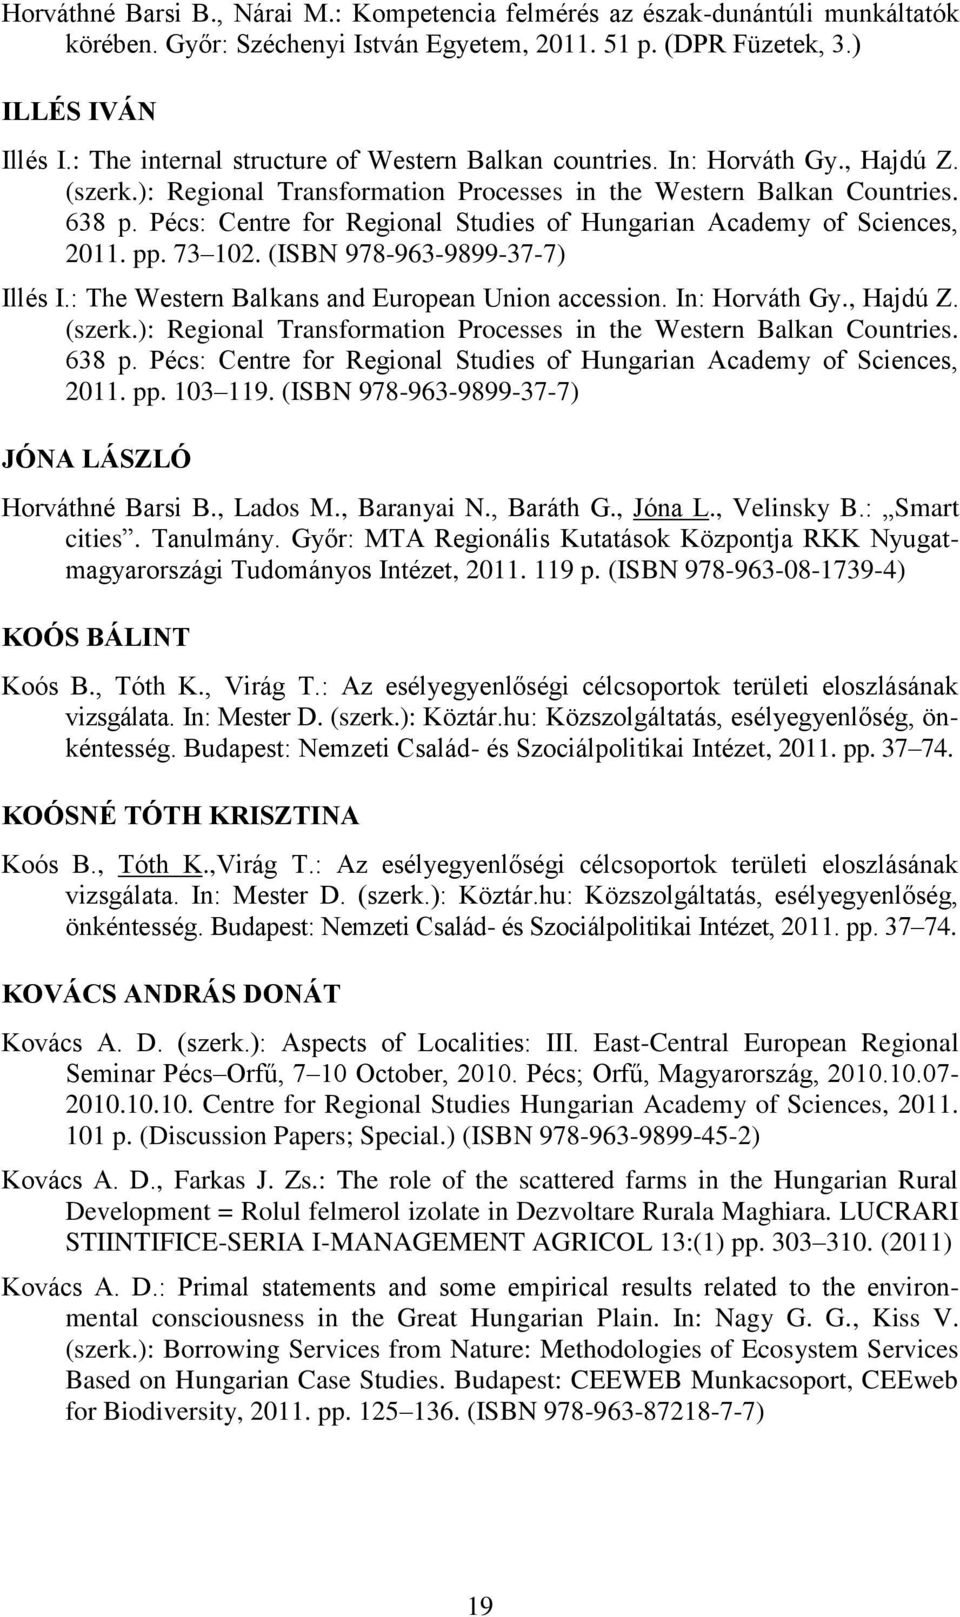 Pécs: Centre for Regional Studies of Hungarian Academy of Sciences, 2011. pp. 73 102. (ISBN 978-963-9899-37-7) Illés I.: The Western Balkans and European Union accession. In: Horváth Gy., Hajdú Z.